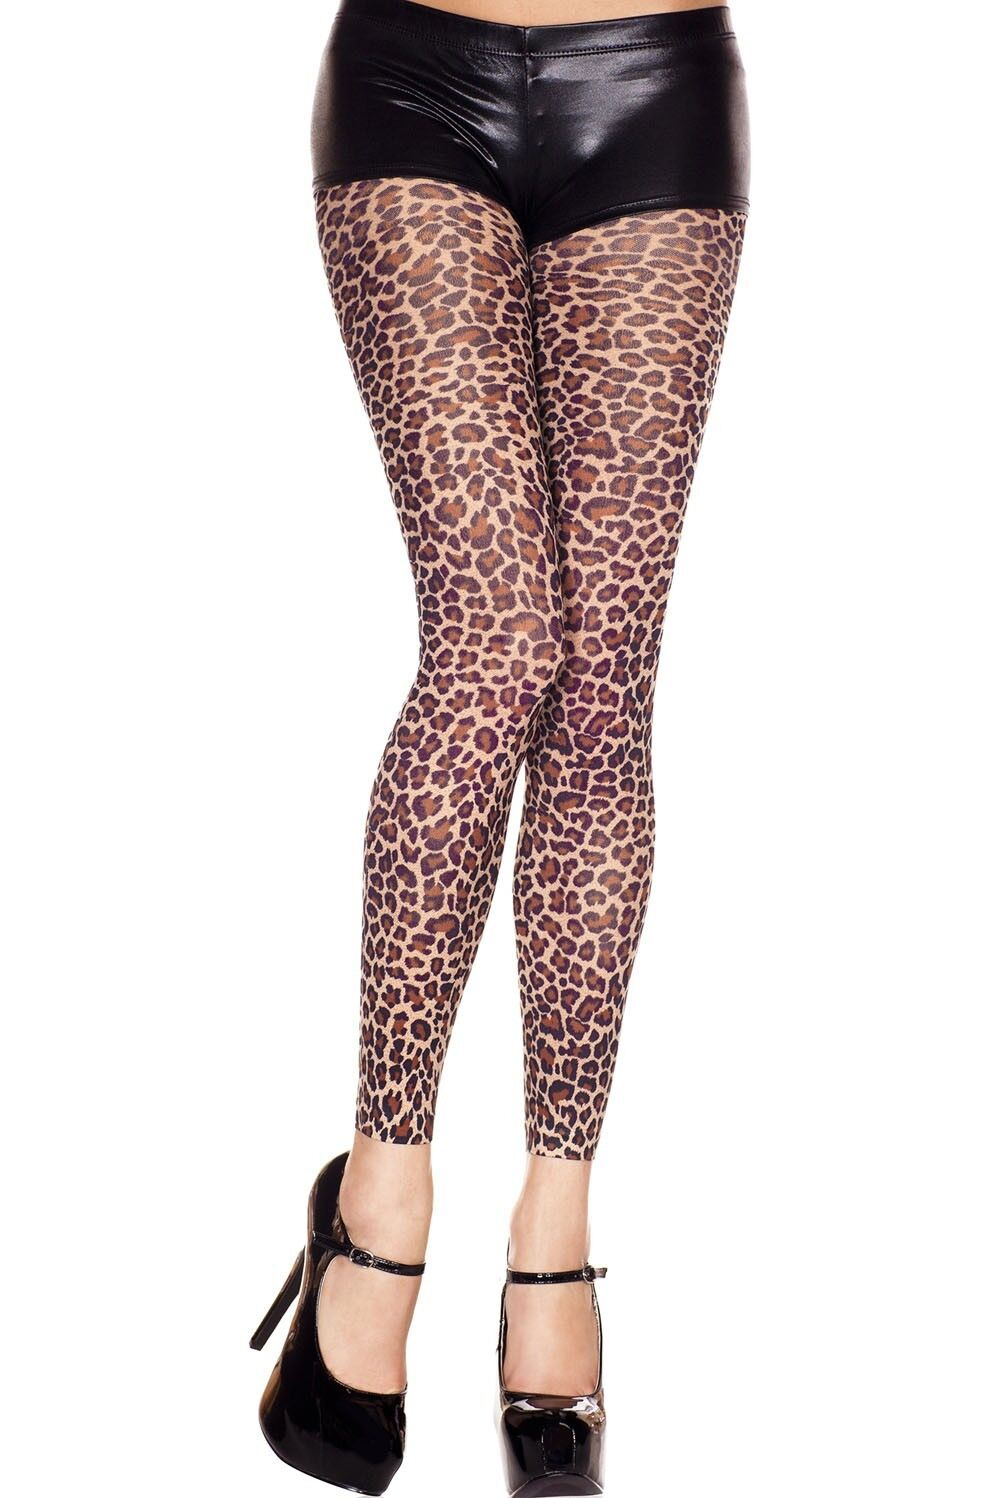 Leopard Animal Print Smooth Touch Footless Tights Sexy -2025